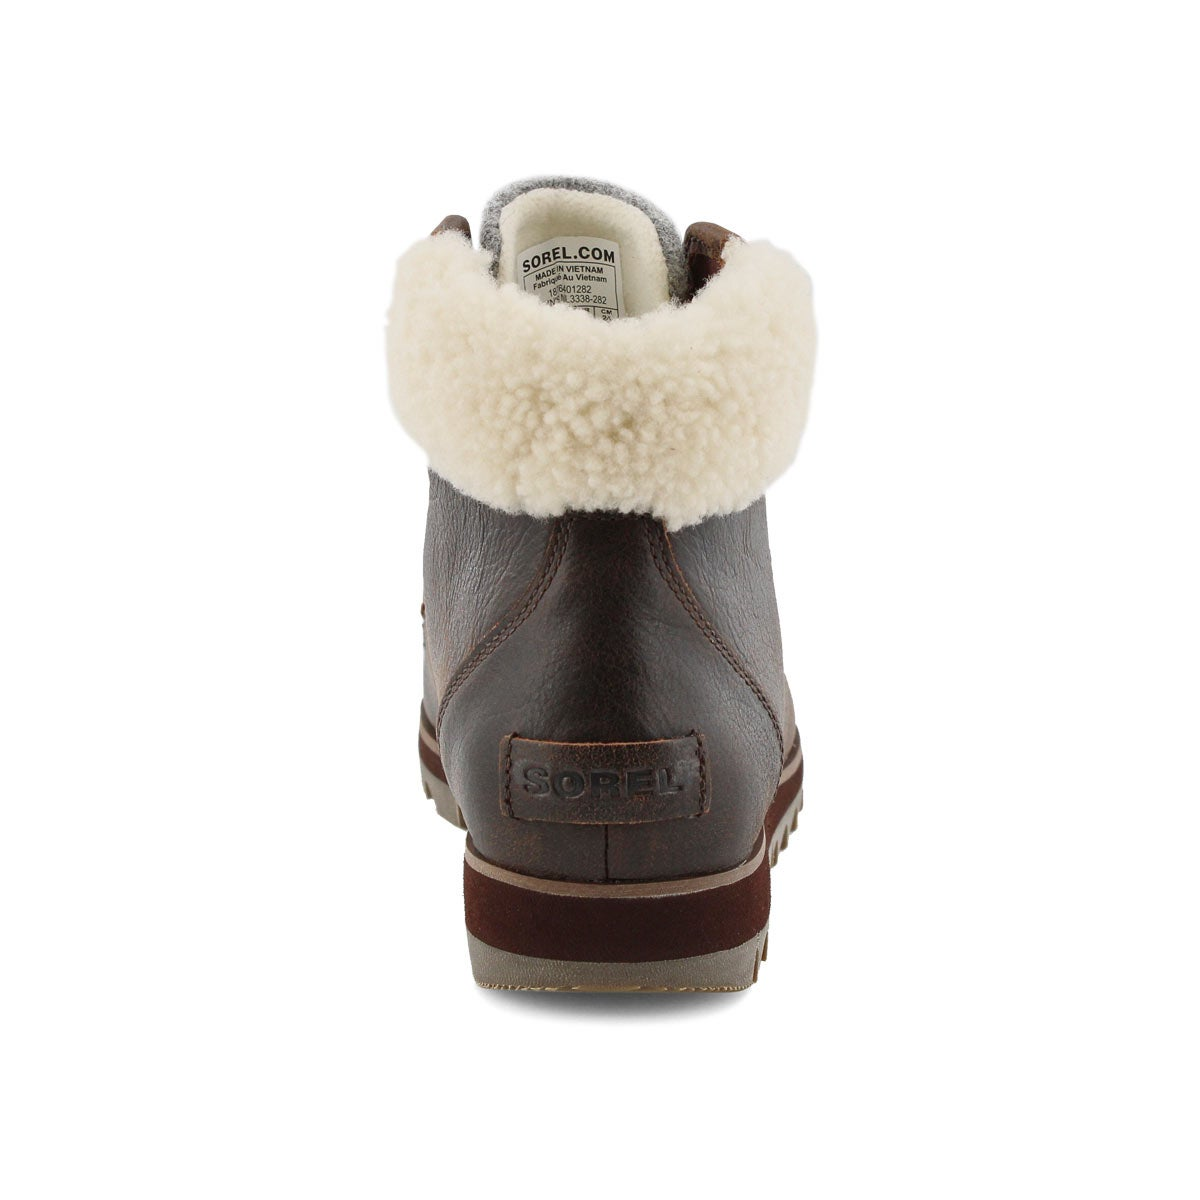 Lds Harlow Lace Cozy burro wtpf boot